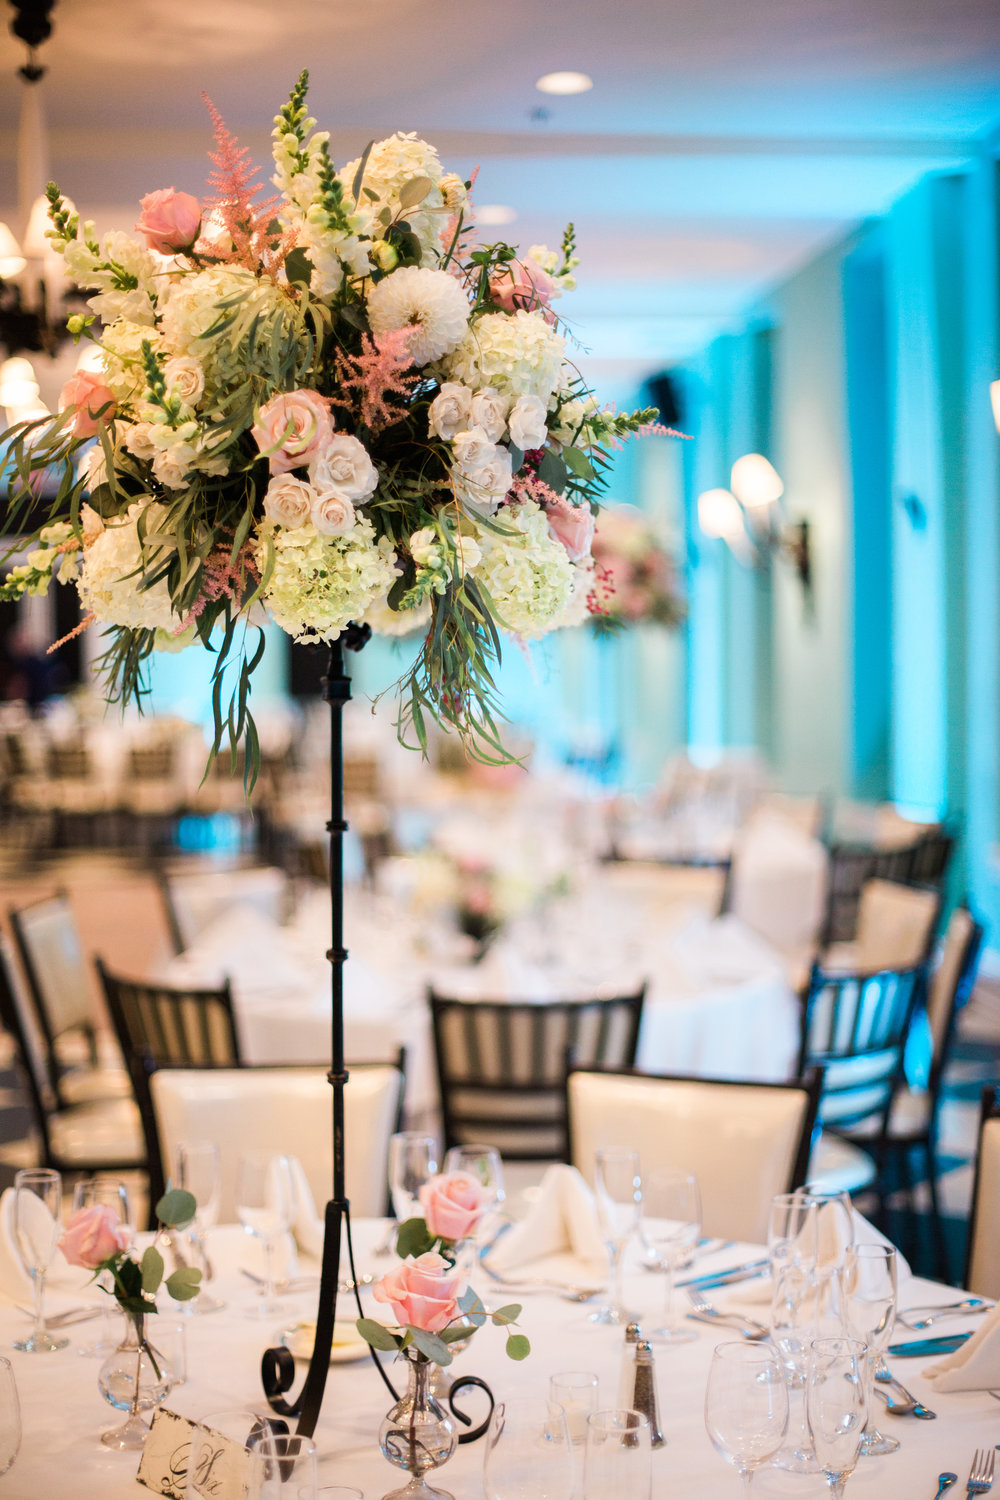 Cape may wedding florist taylor nate at congress hall feat some flair to the room topped with lush arrangements of dahlias roses astilbe hydreangea and greens small bud vases added some balance to the base reviewsmspy